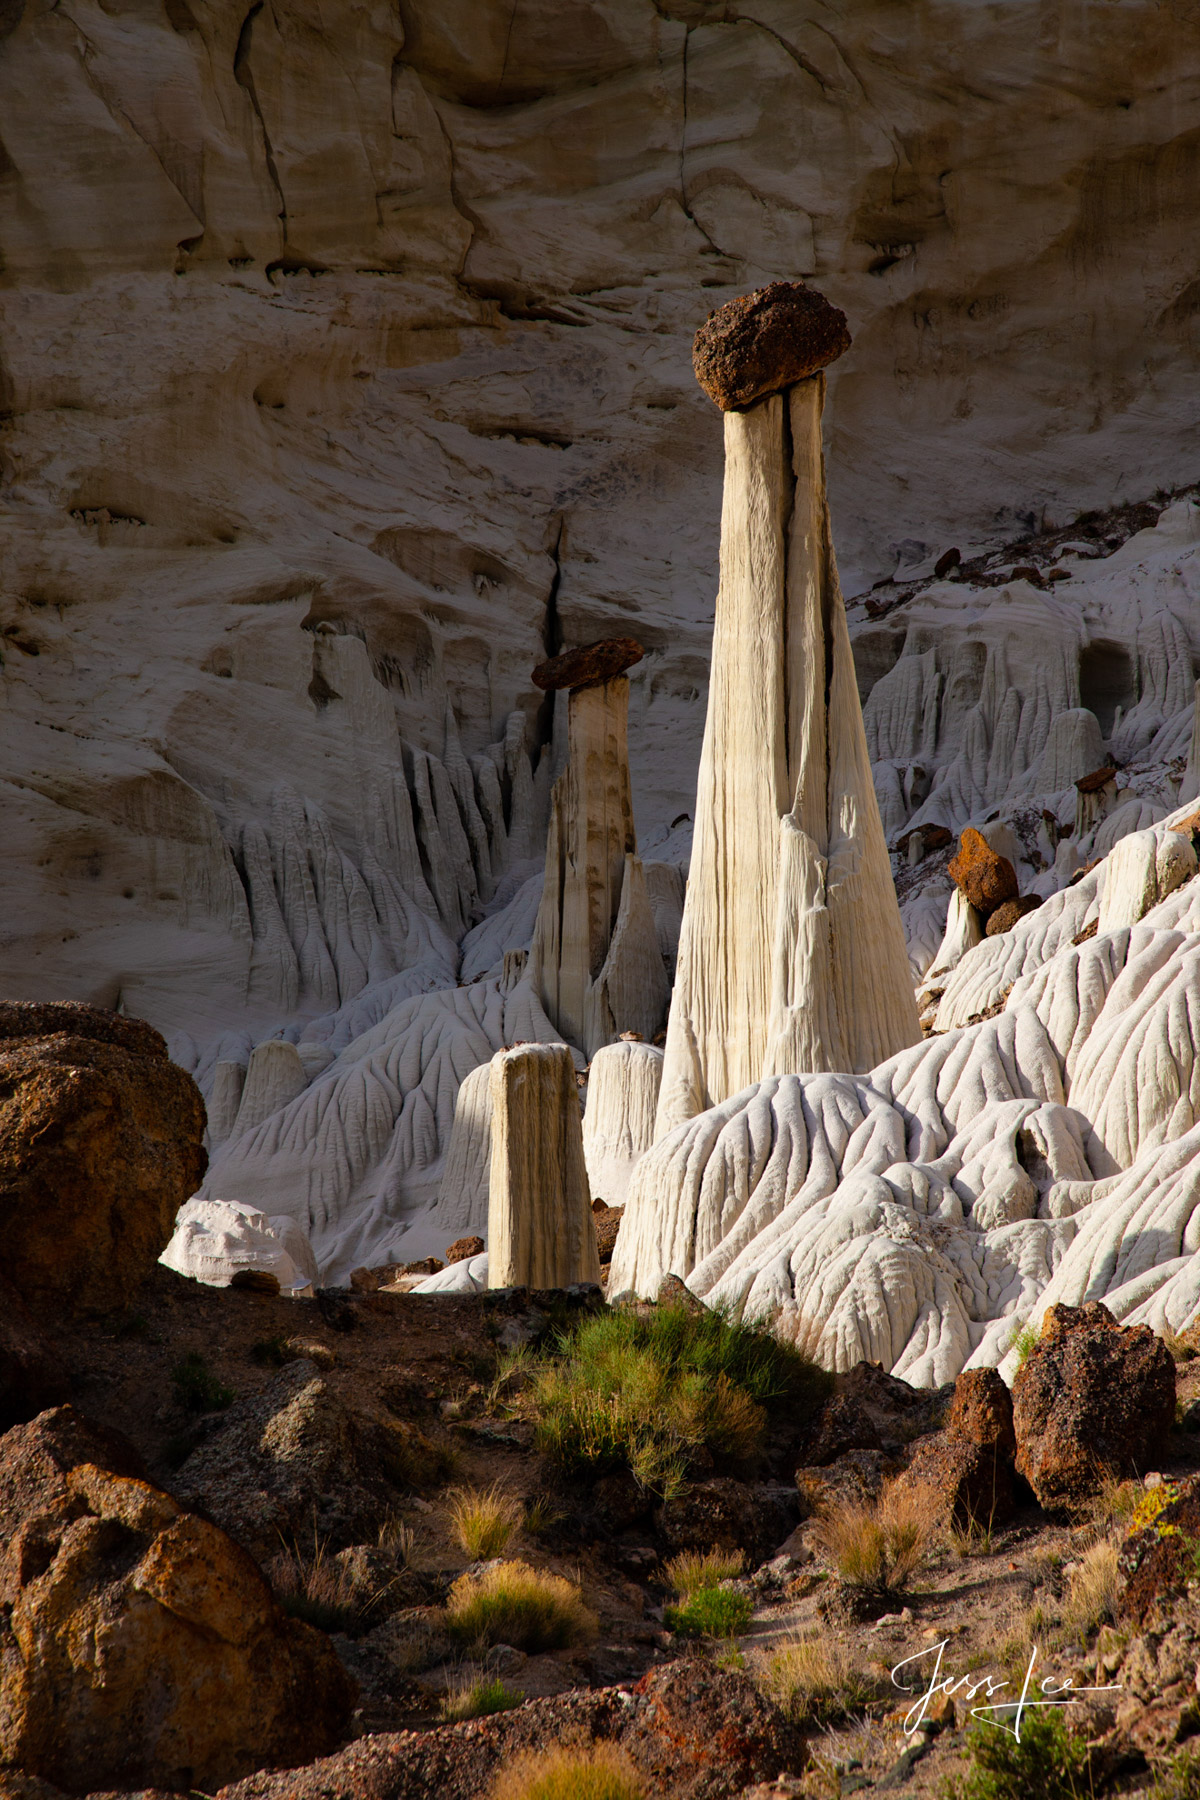 Limited Edition of 50 Exclusive high-resolution Museum Quality Fine Art Prints of Vertical Hoodoo Landscapes. Photos copyright...